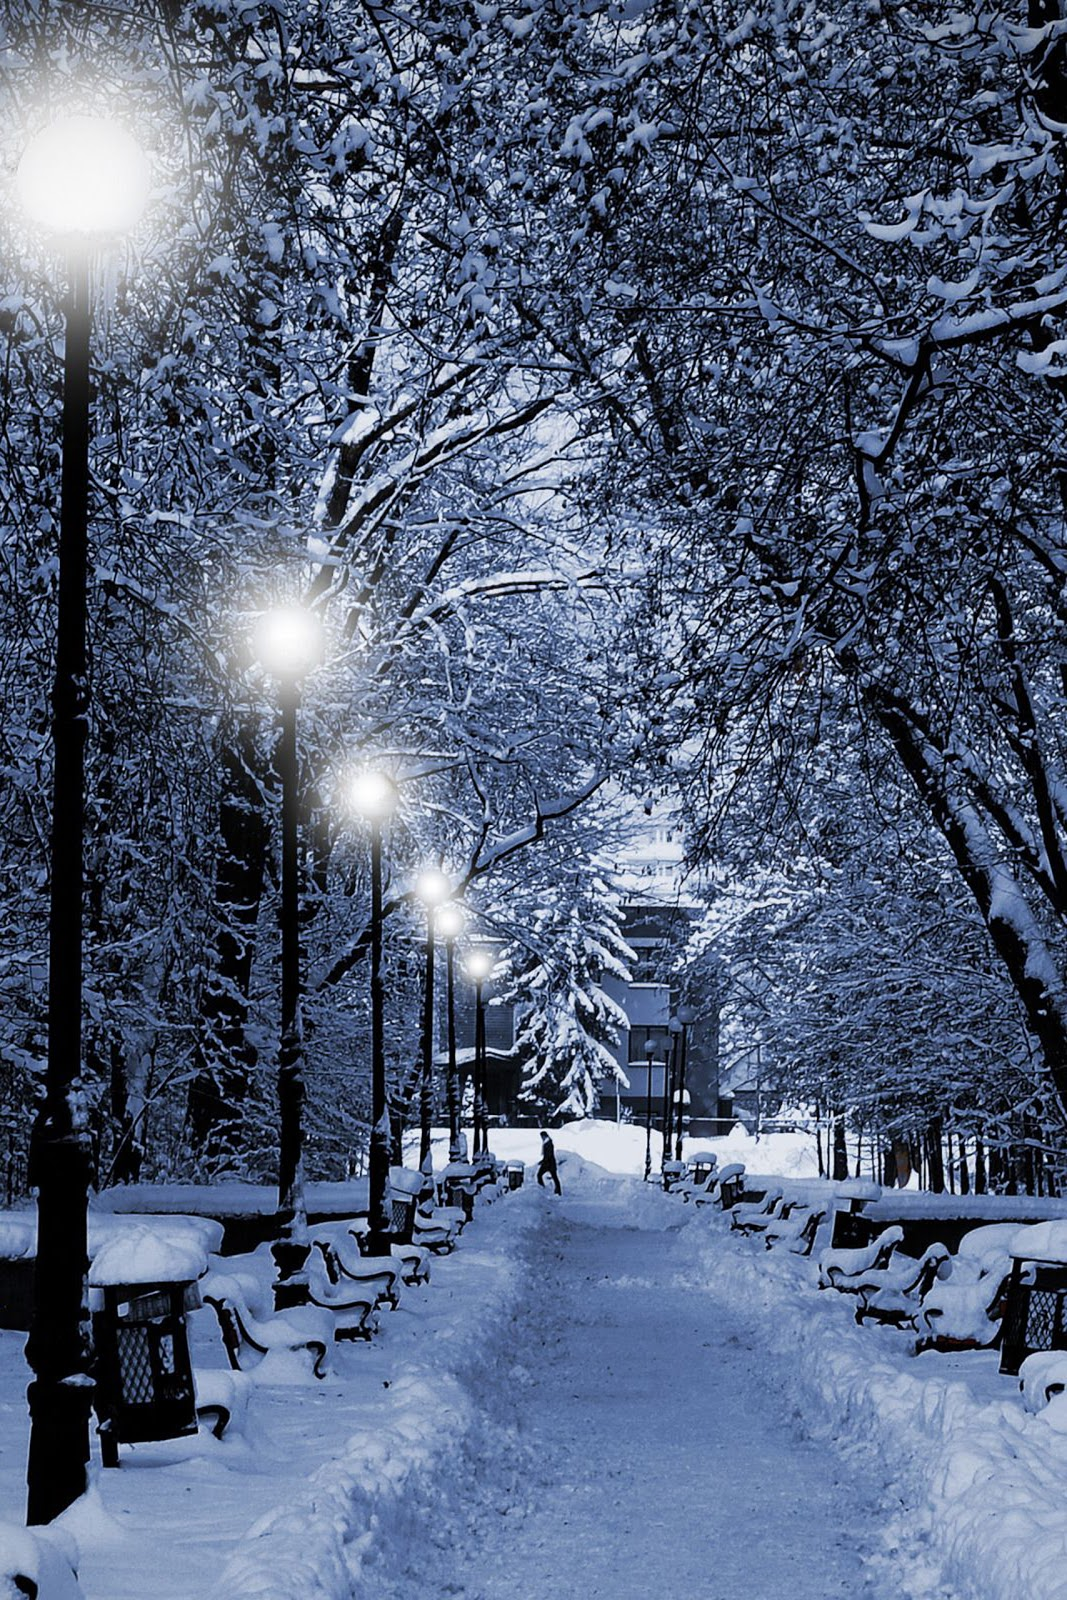 Winter Wallpapers Iphone PM Iphone apps games wallpapers themes No comments